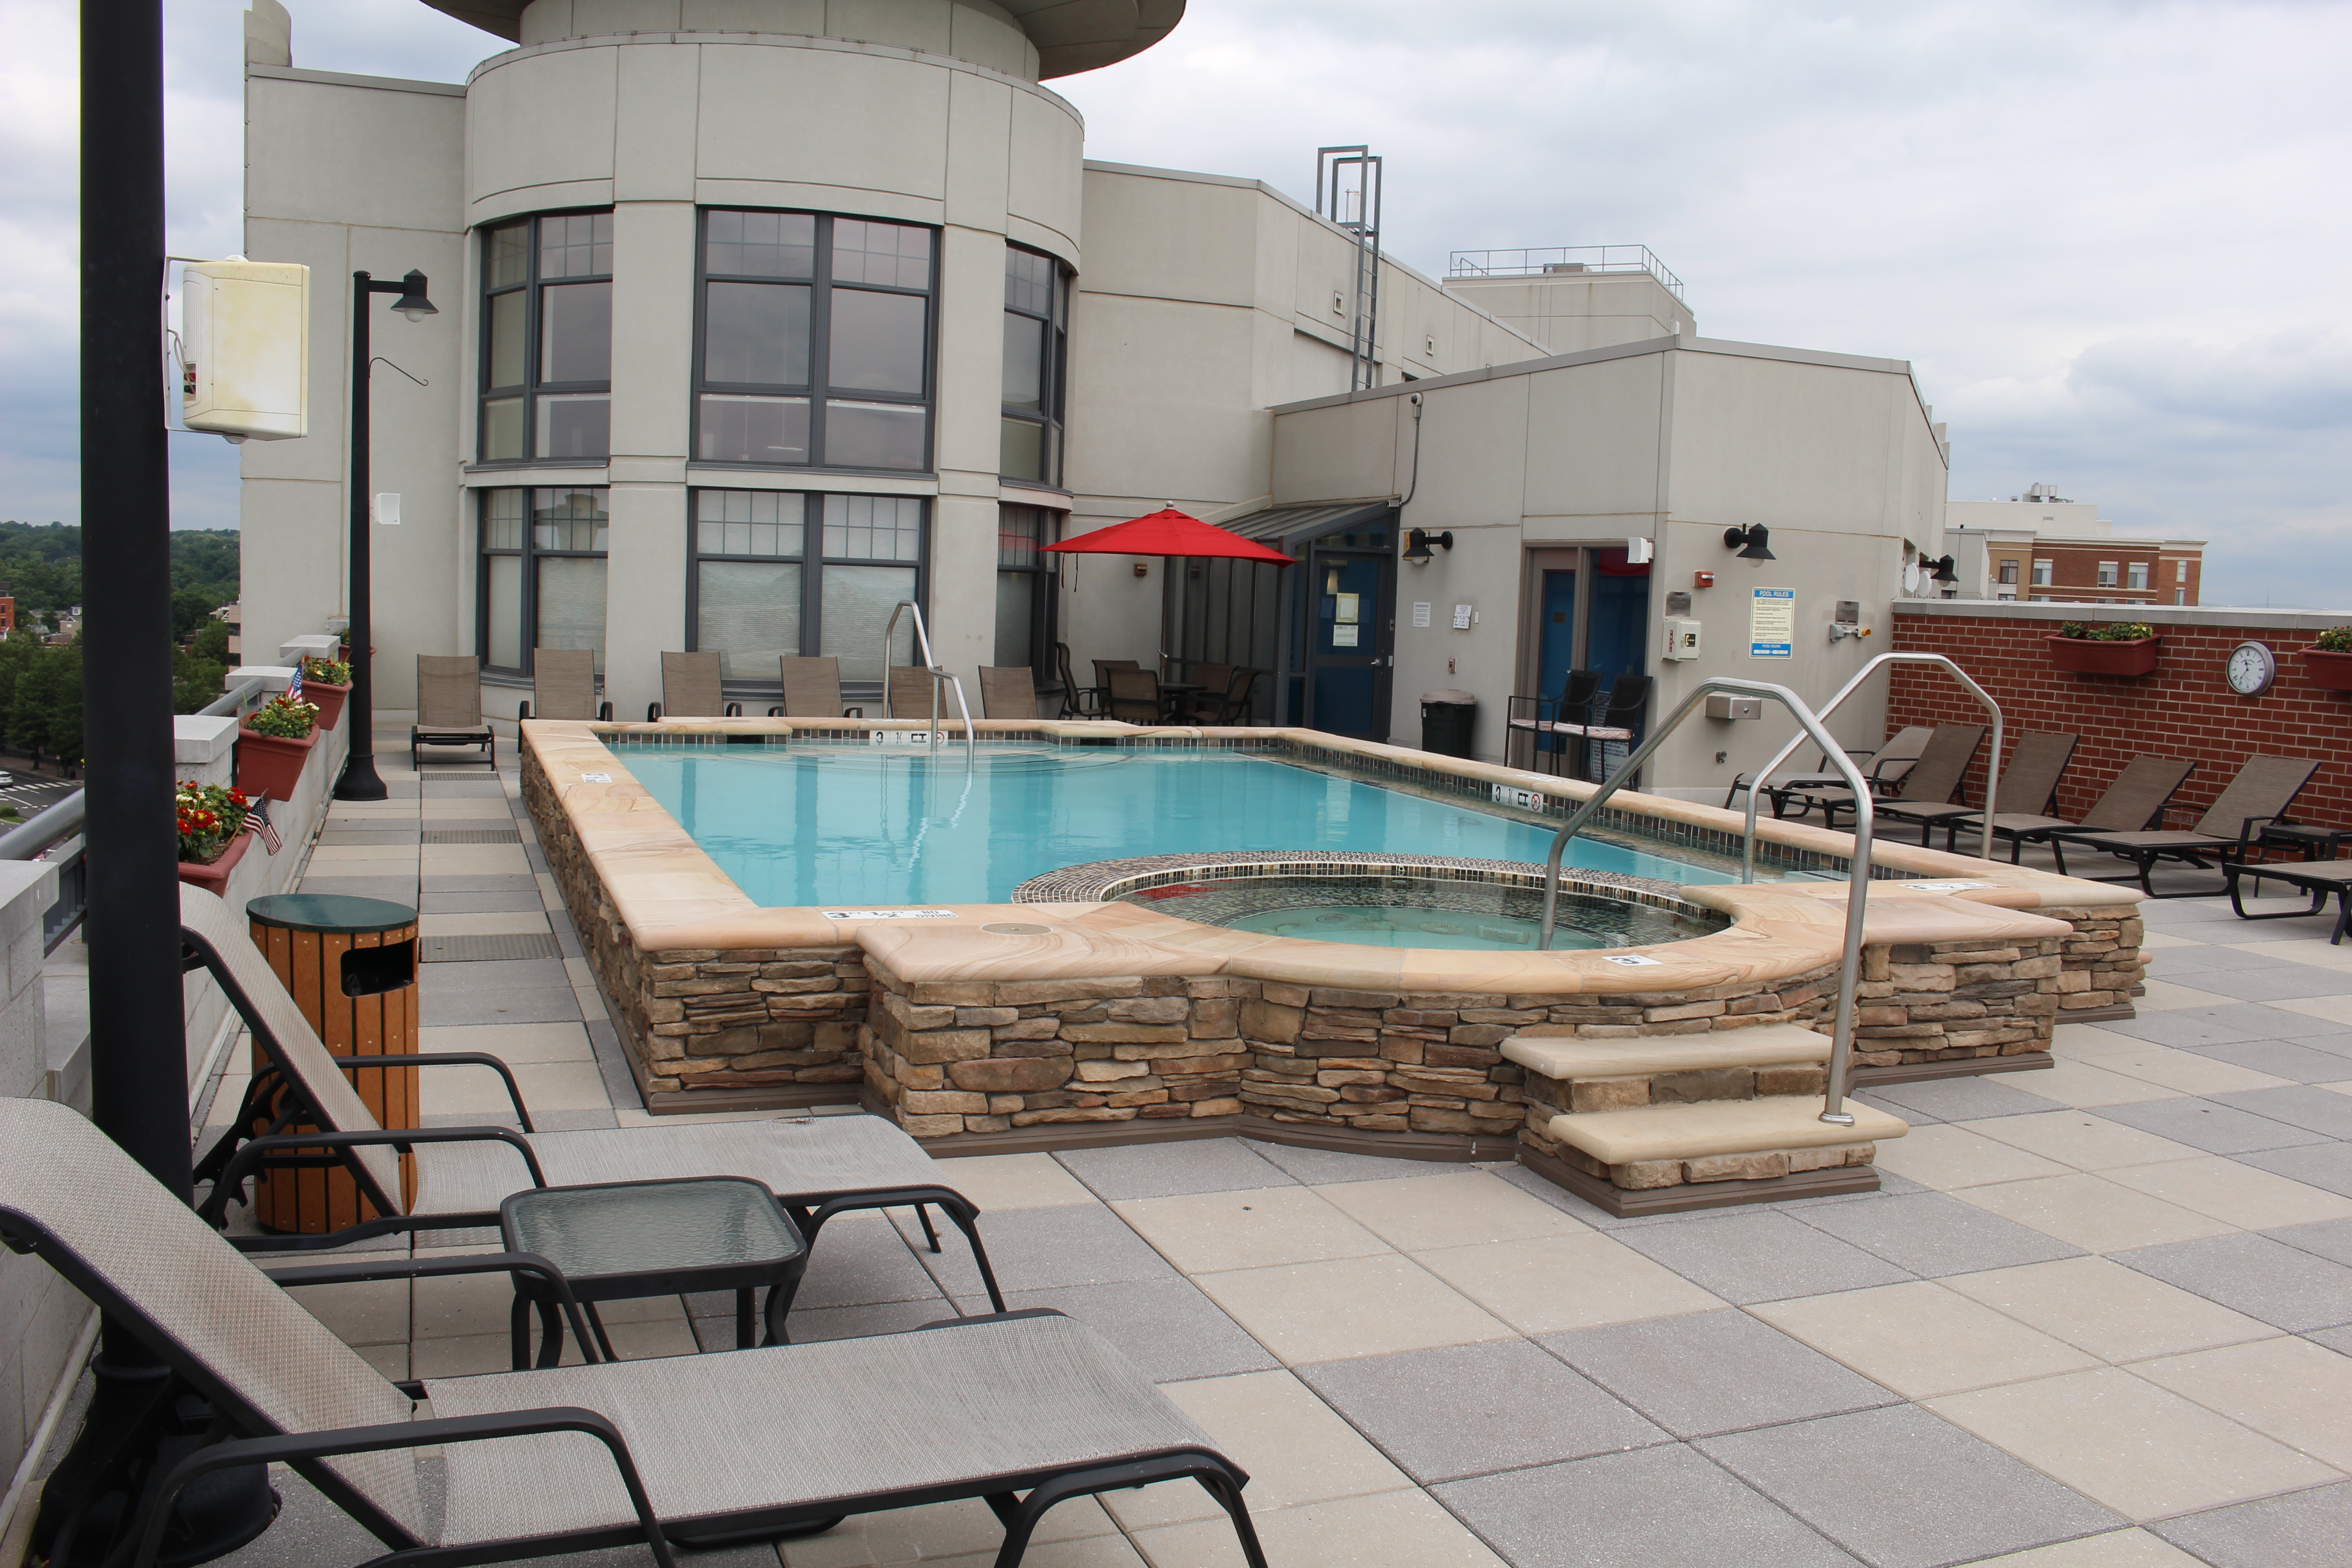 Claridon Swimming Pool and Spa 4